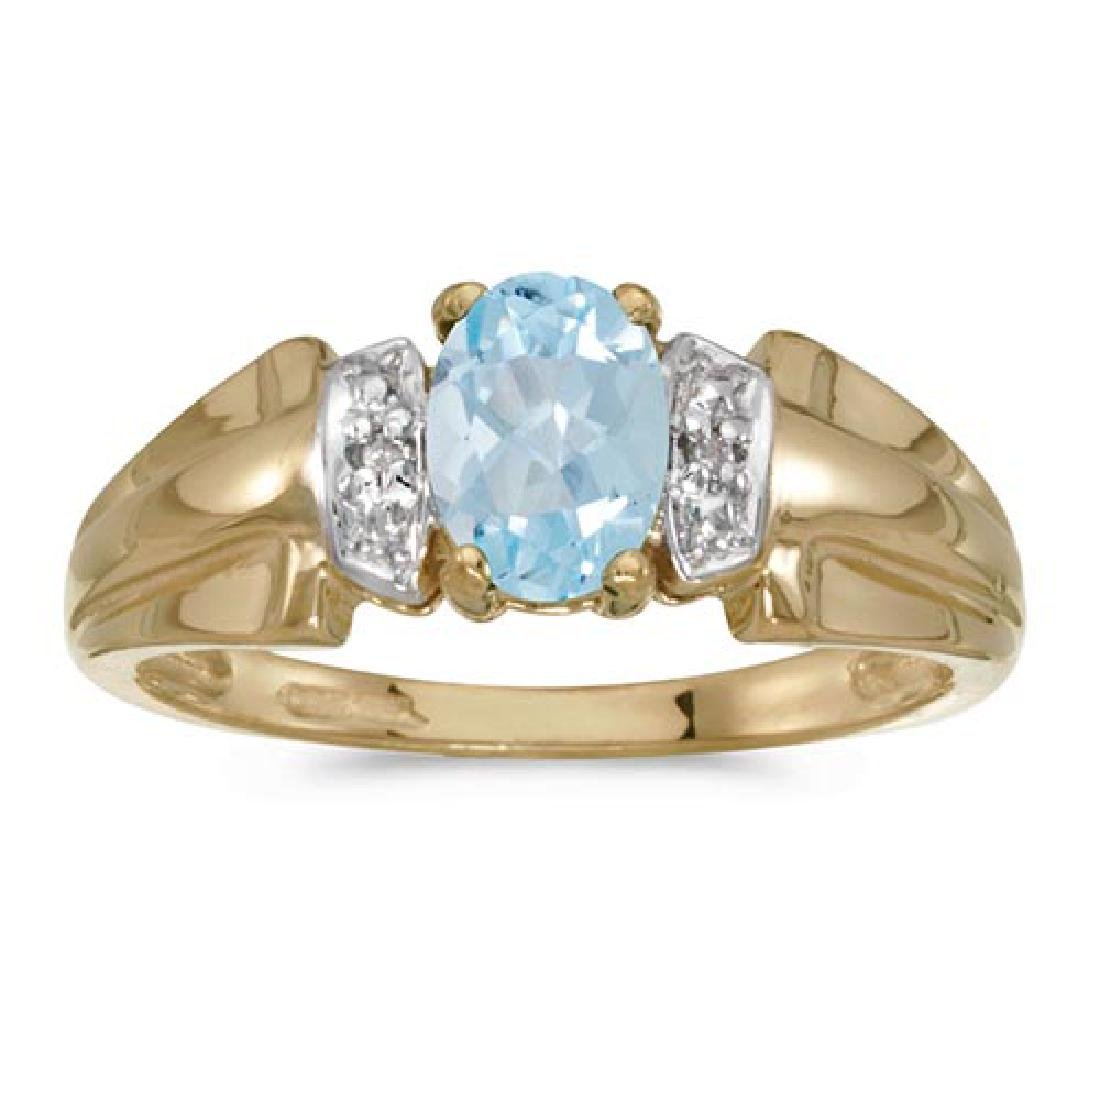 Certified 10k Yellow Gold Oval Aquamarine And Diamond R